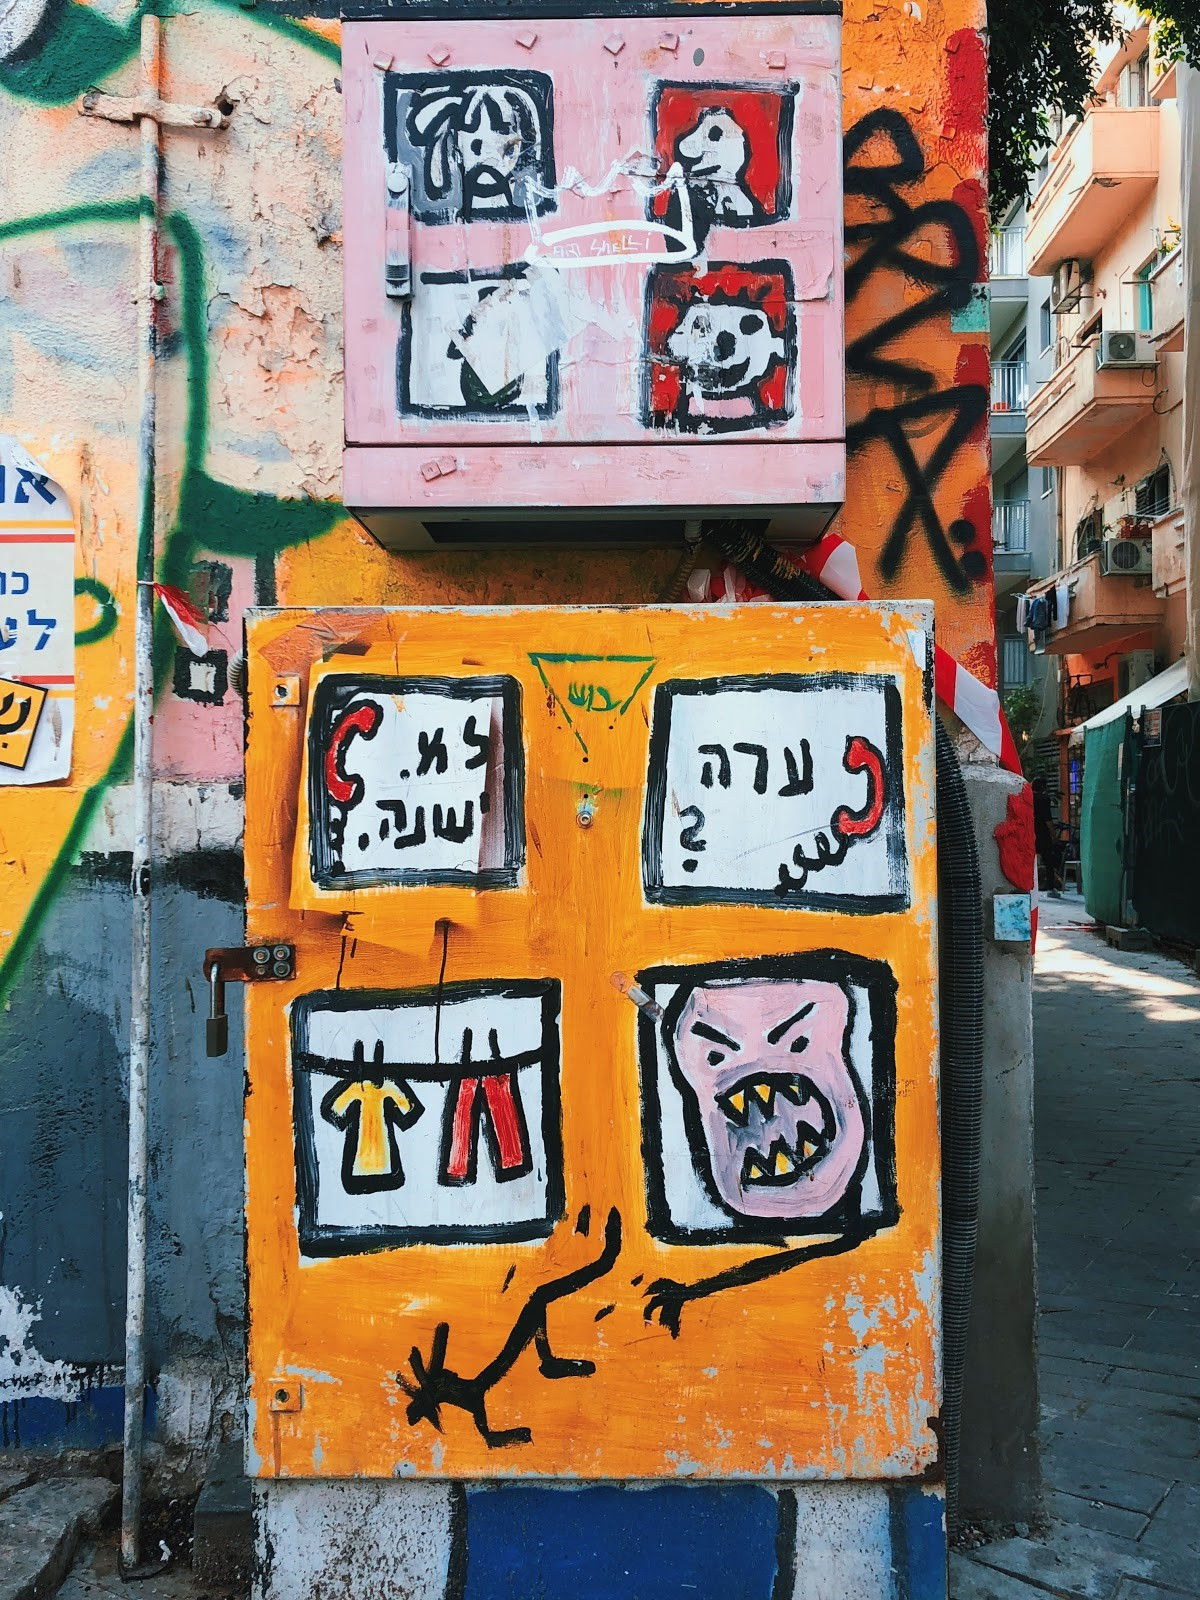 A painted electrical box on a street in Tel Aviv